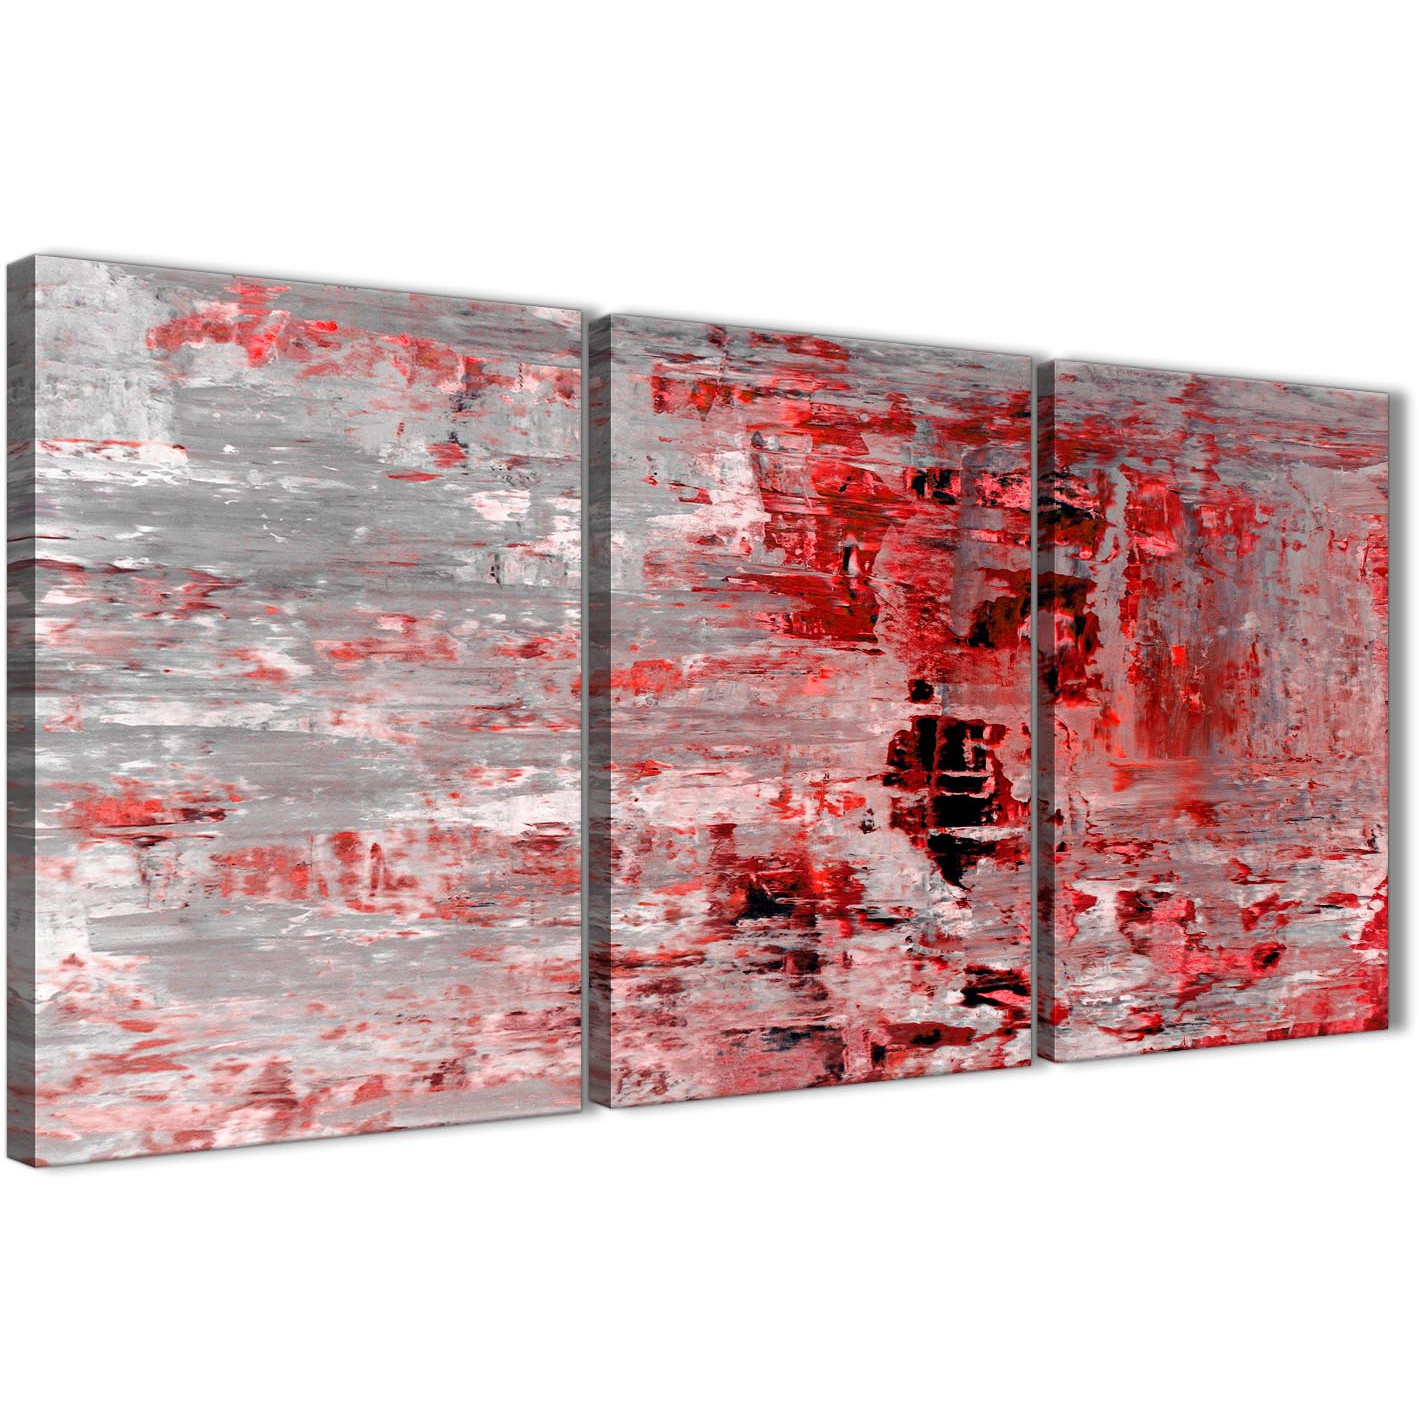 Charming Next Set Of 3 Panel Red Grey Painting Kitchen Canvas Wall Art Accessories    Abstract 3414 Display Gallery Item 1 ...